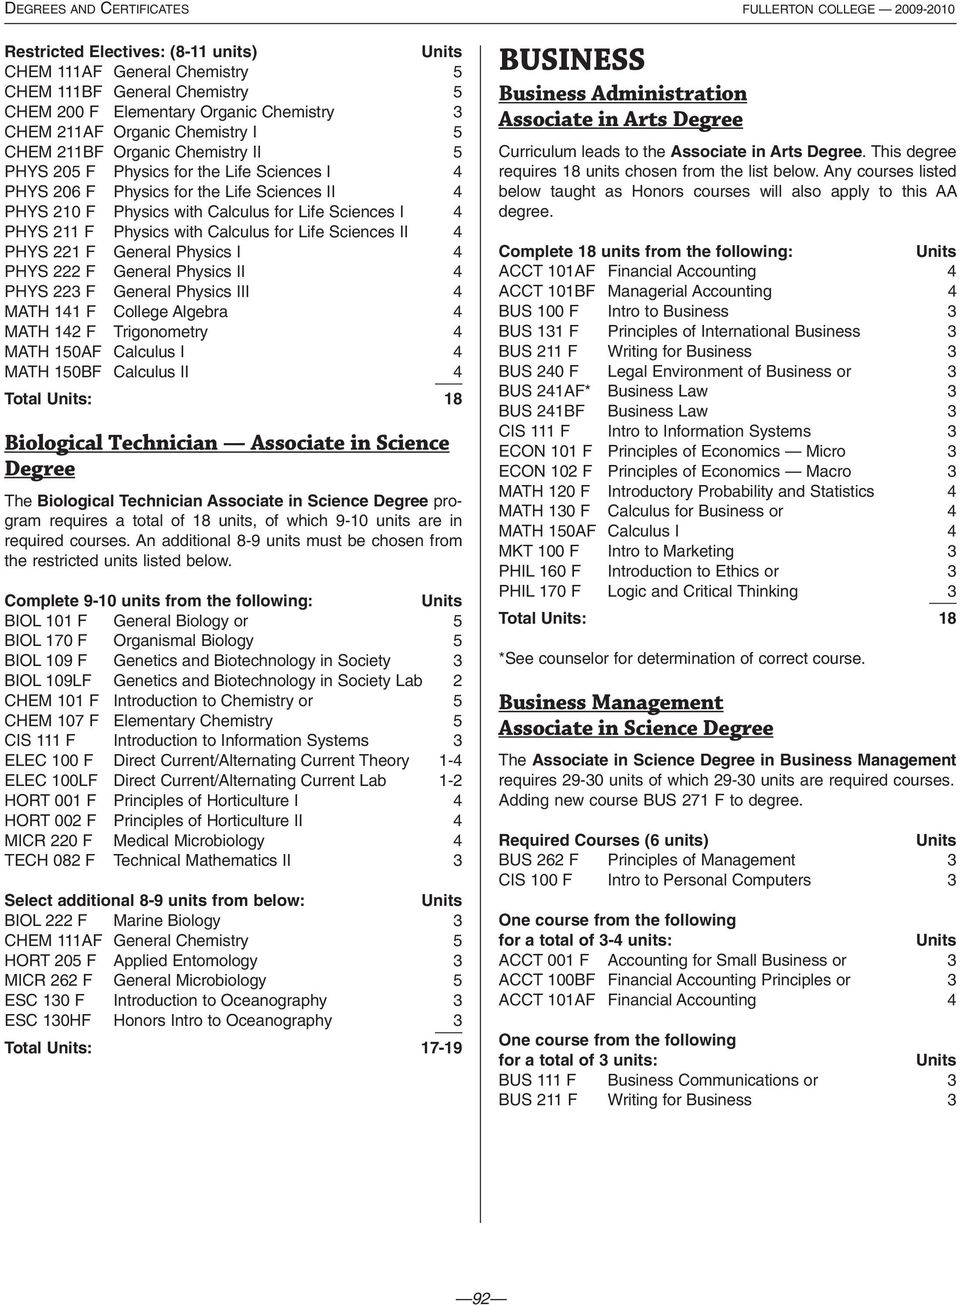 Sciences I 4 PHYS 211 F Physics with Calculus for Life Sciences II 4 PHYS 221 F General Physics I 4 PHYS 222 F General Physics II 4 PHYS 223 F General Physics III 4 MATH 141 F College Algebra 4 MATH